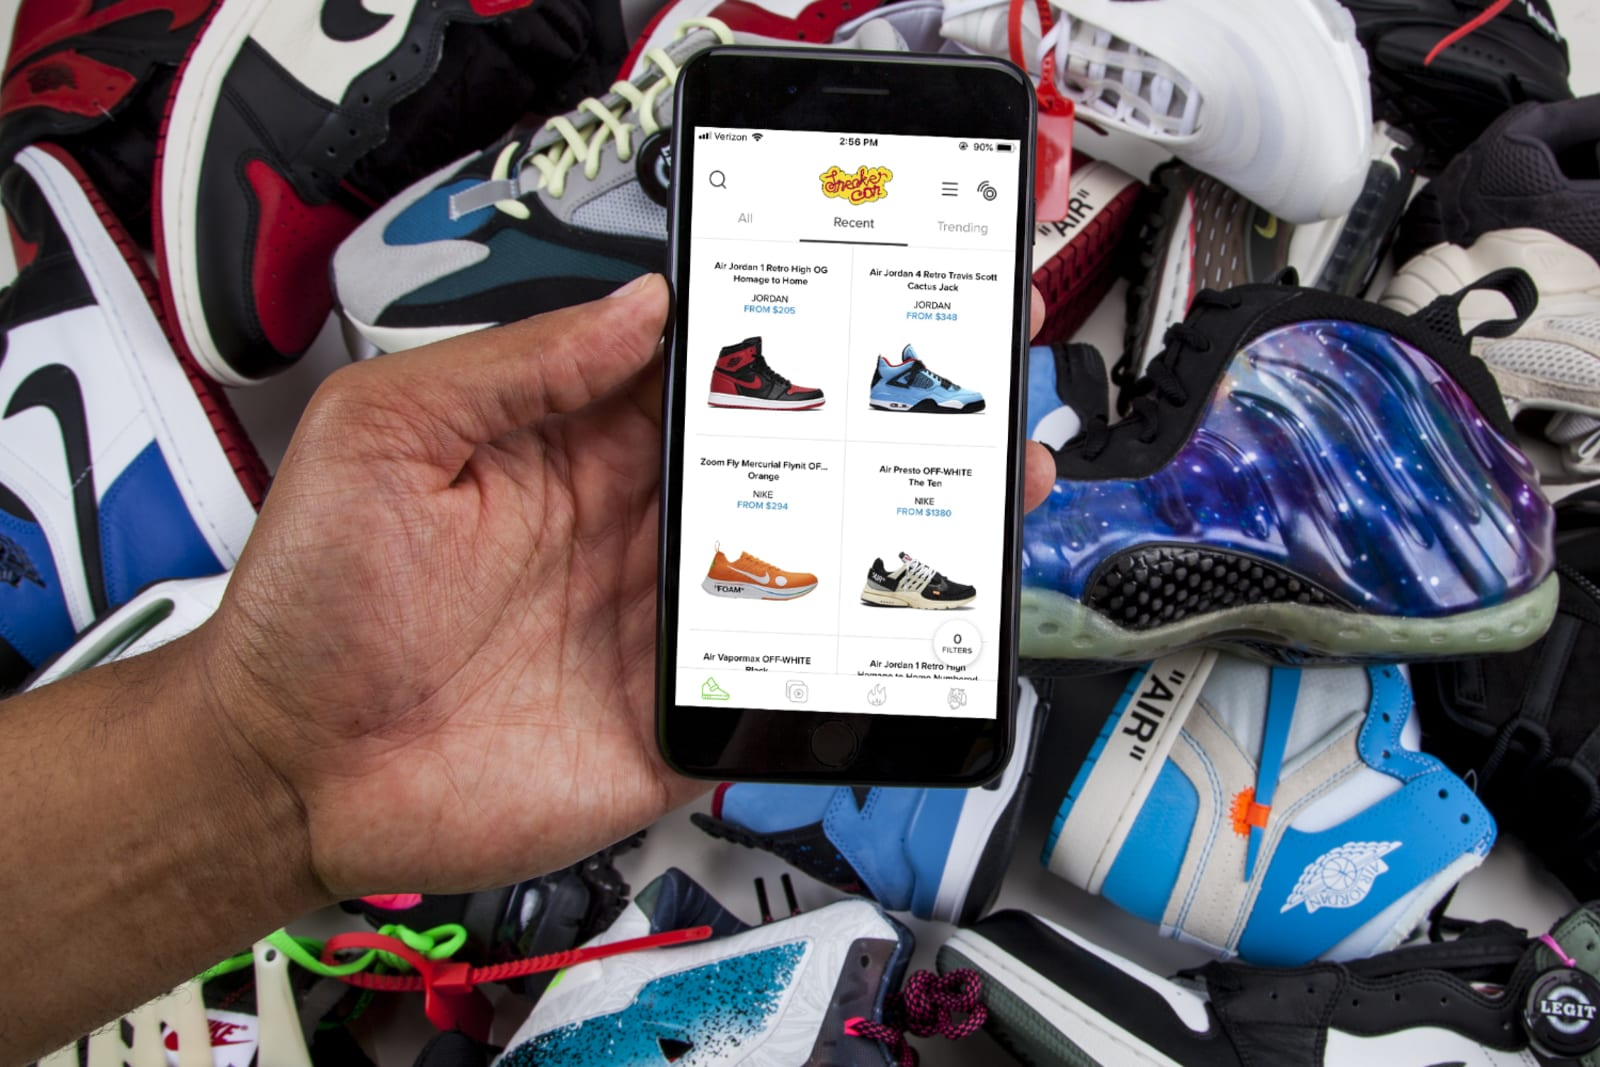 91a68ec4 Sneaker Con is mostly known for its shoe conventions around the world, but  in 2018 the company launched an app designed to compete with StockX and  GOAT.